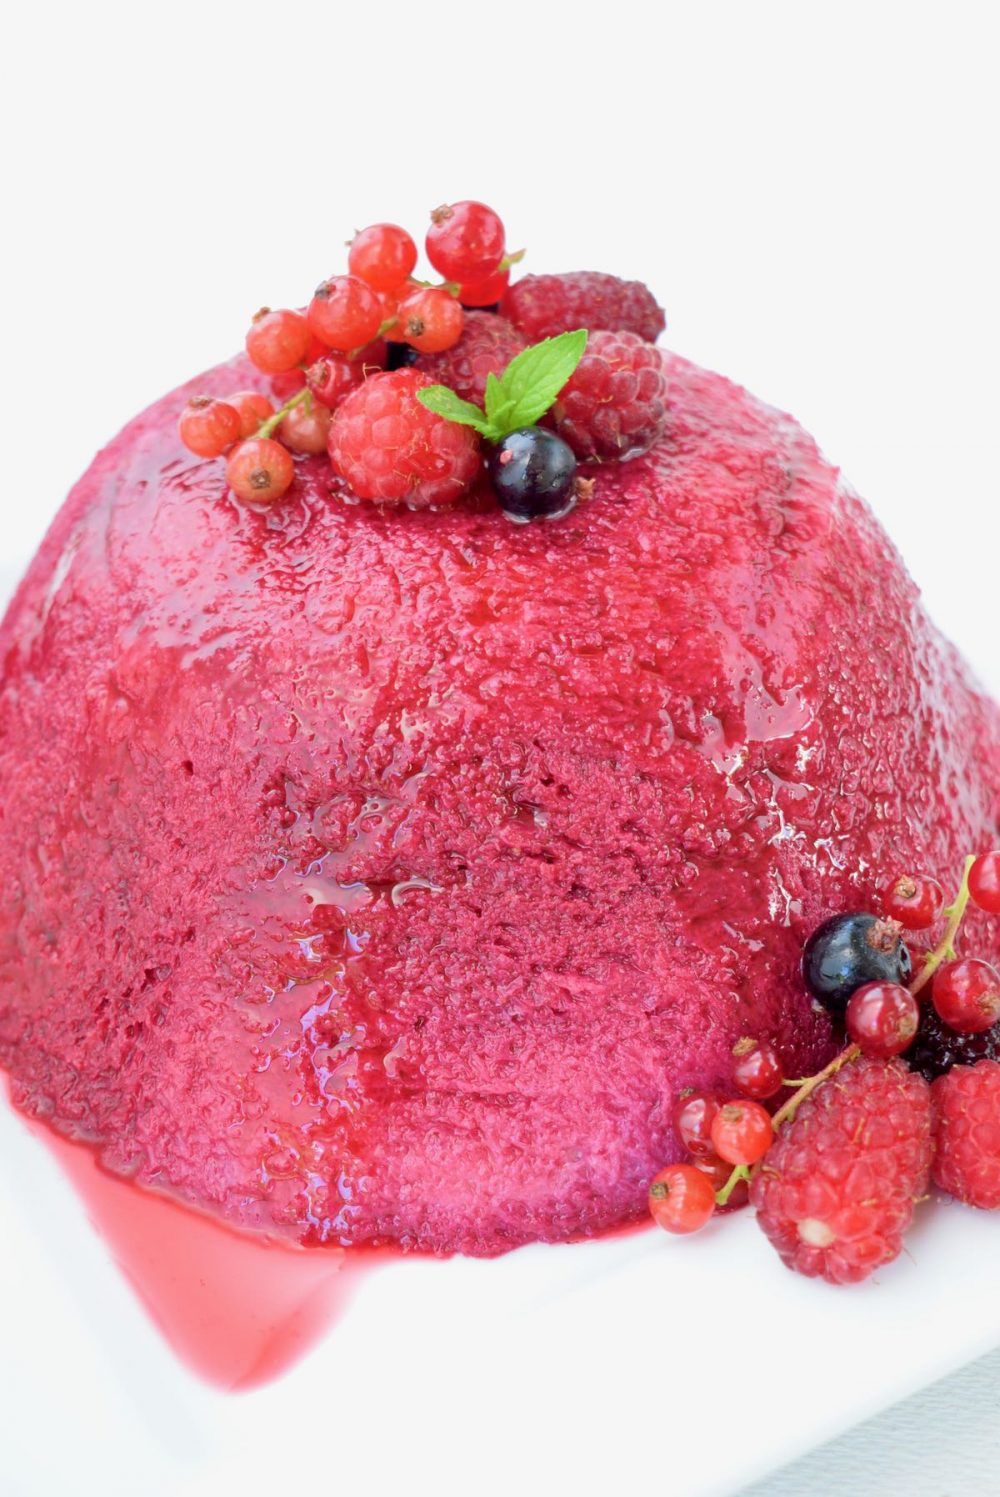 A juicy dome shaped finished pudding sitting on a white plate and decorated with fresh red fuit.